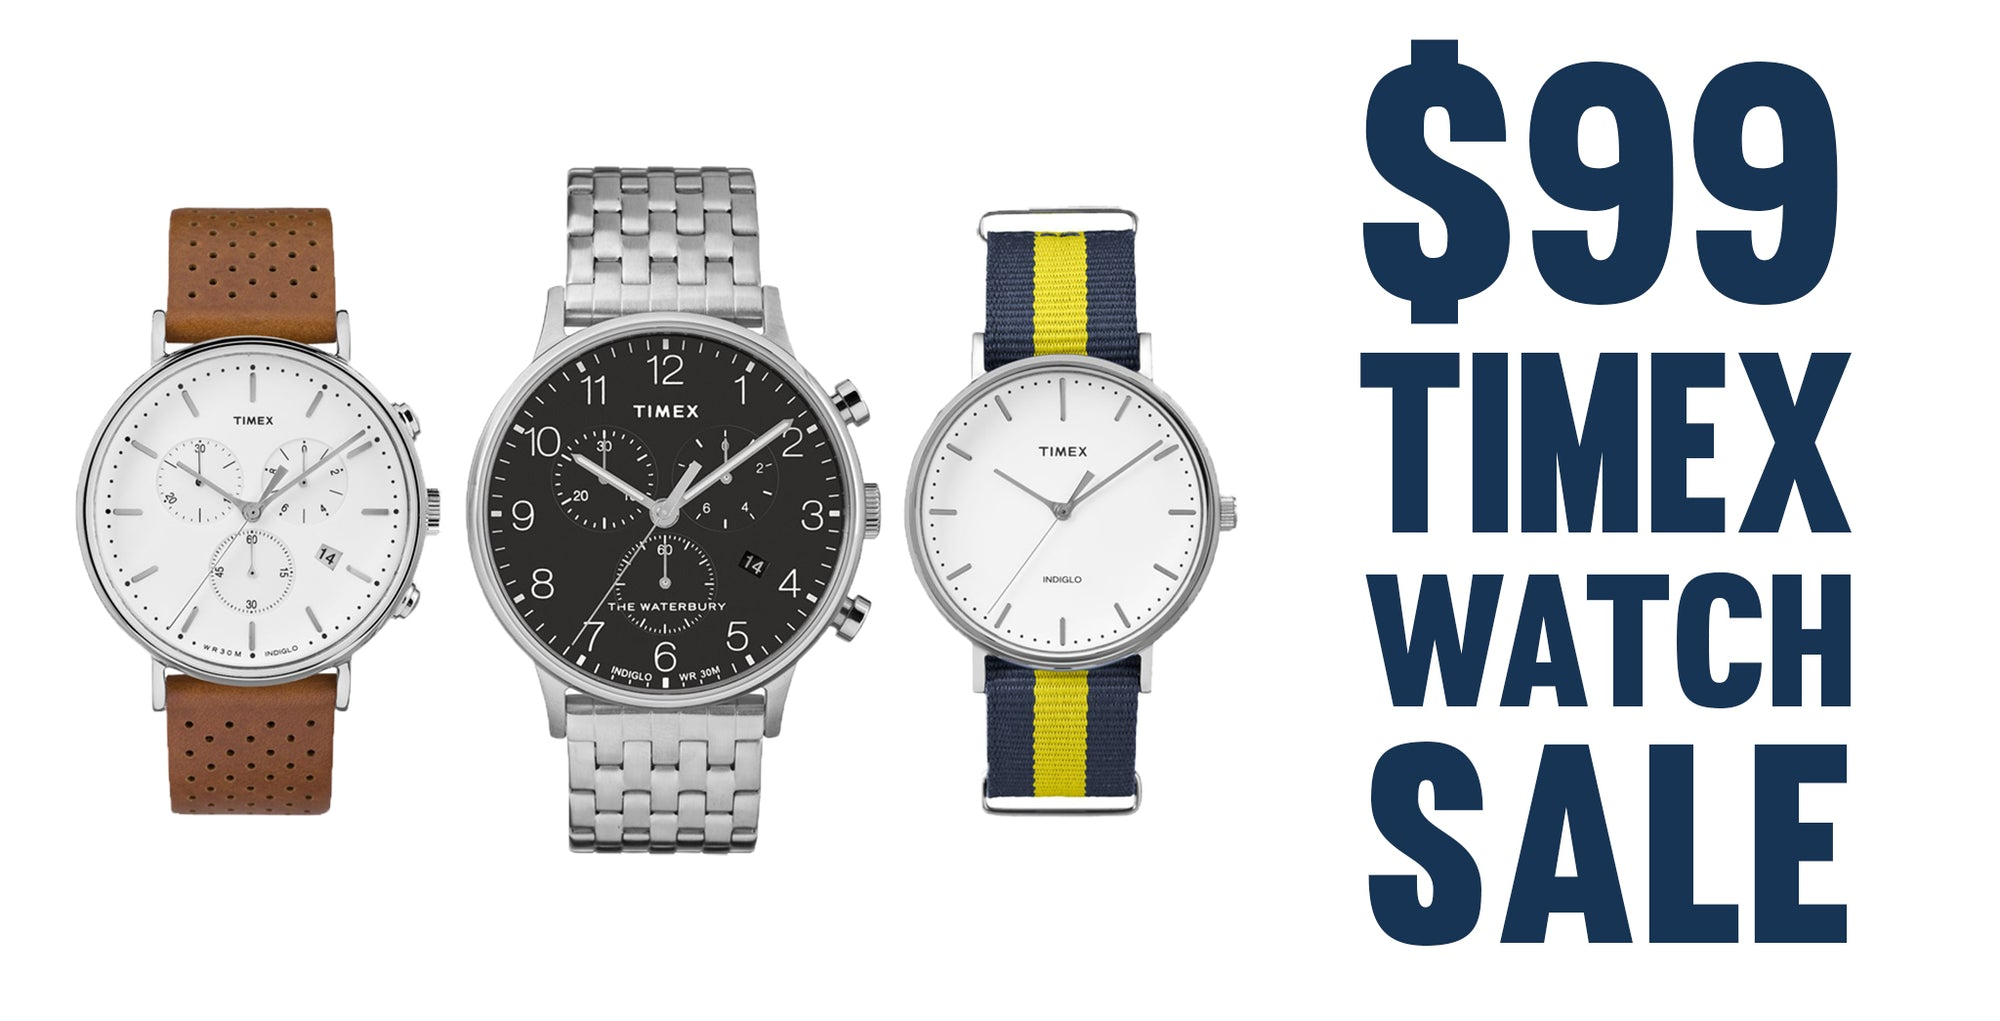 Timex Online Watch Sale